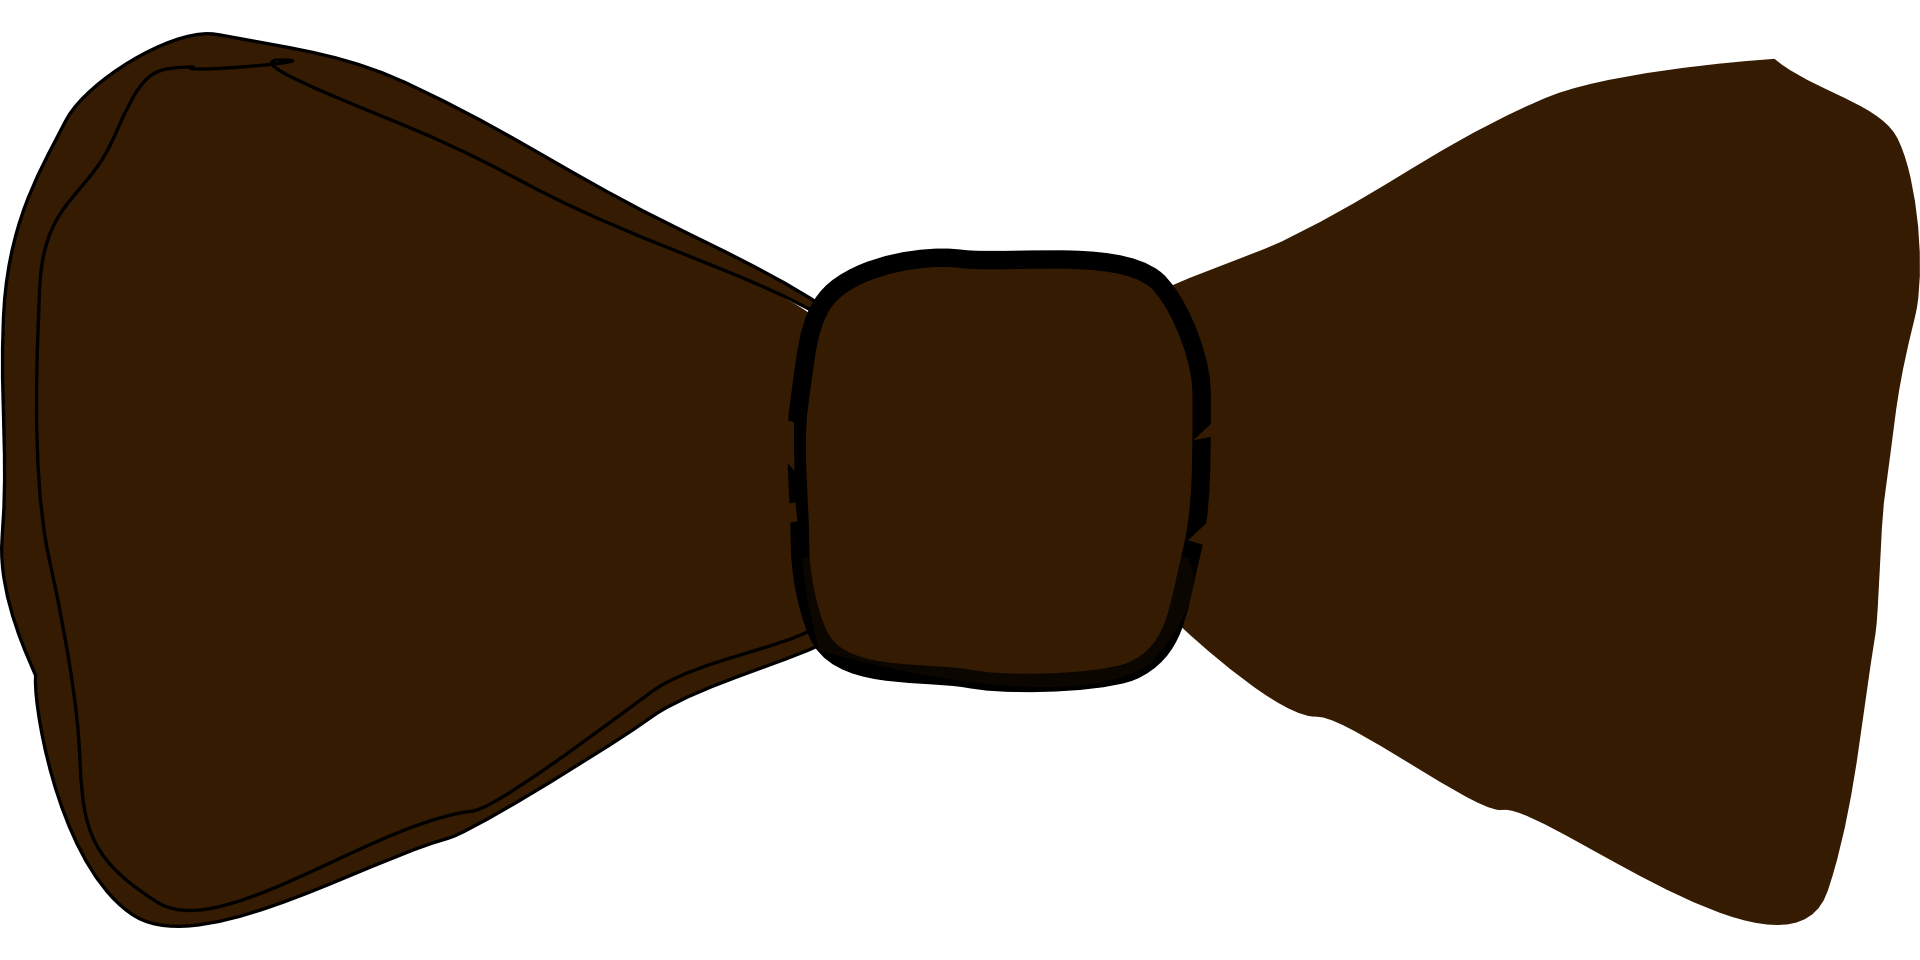 Brown photo prop template. Moustache clipart bow tie